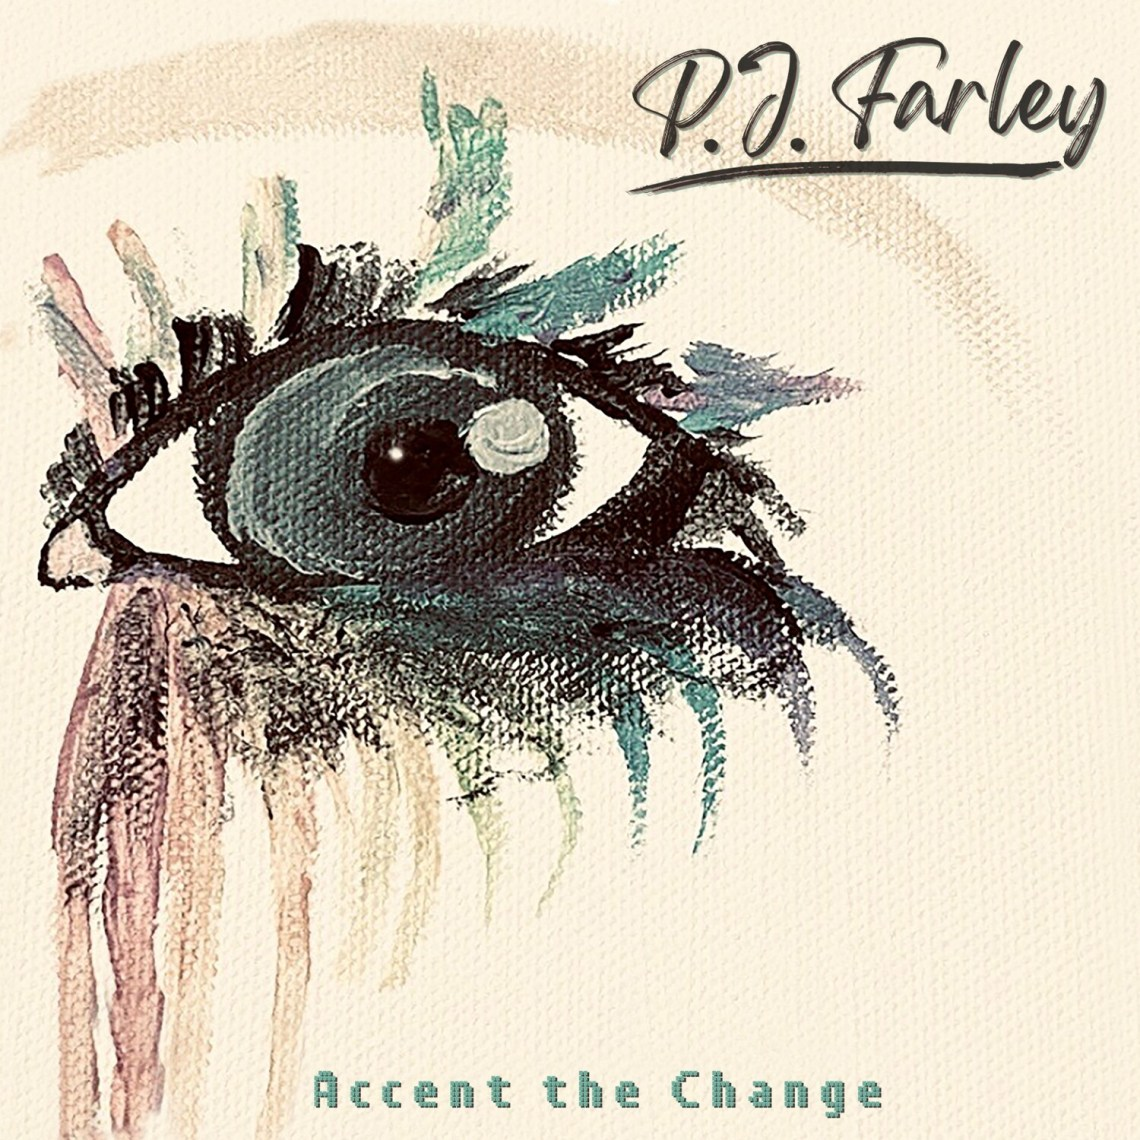 Accent the Change